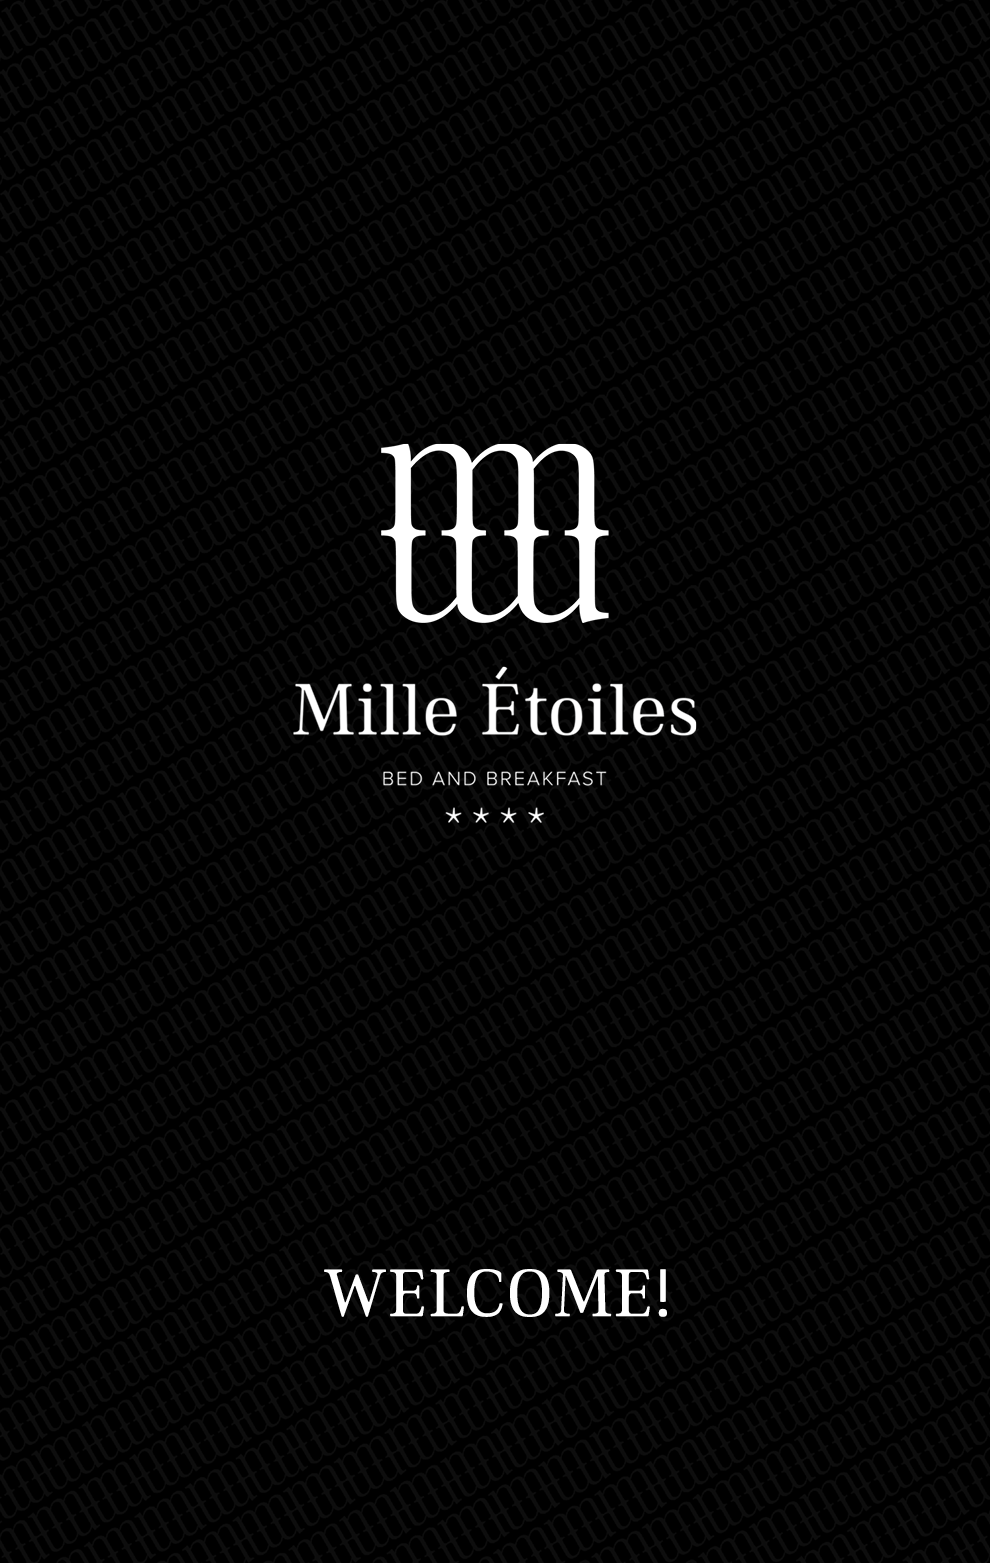 mille-etoiles-home-over-ons-ENG